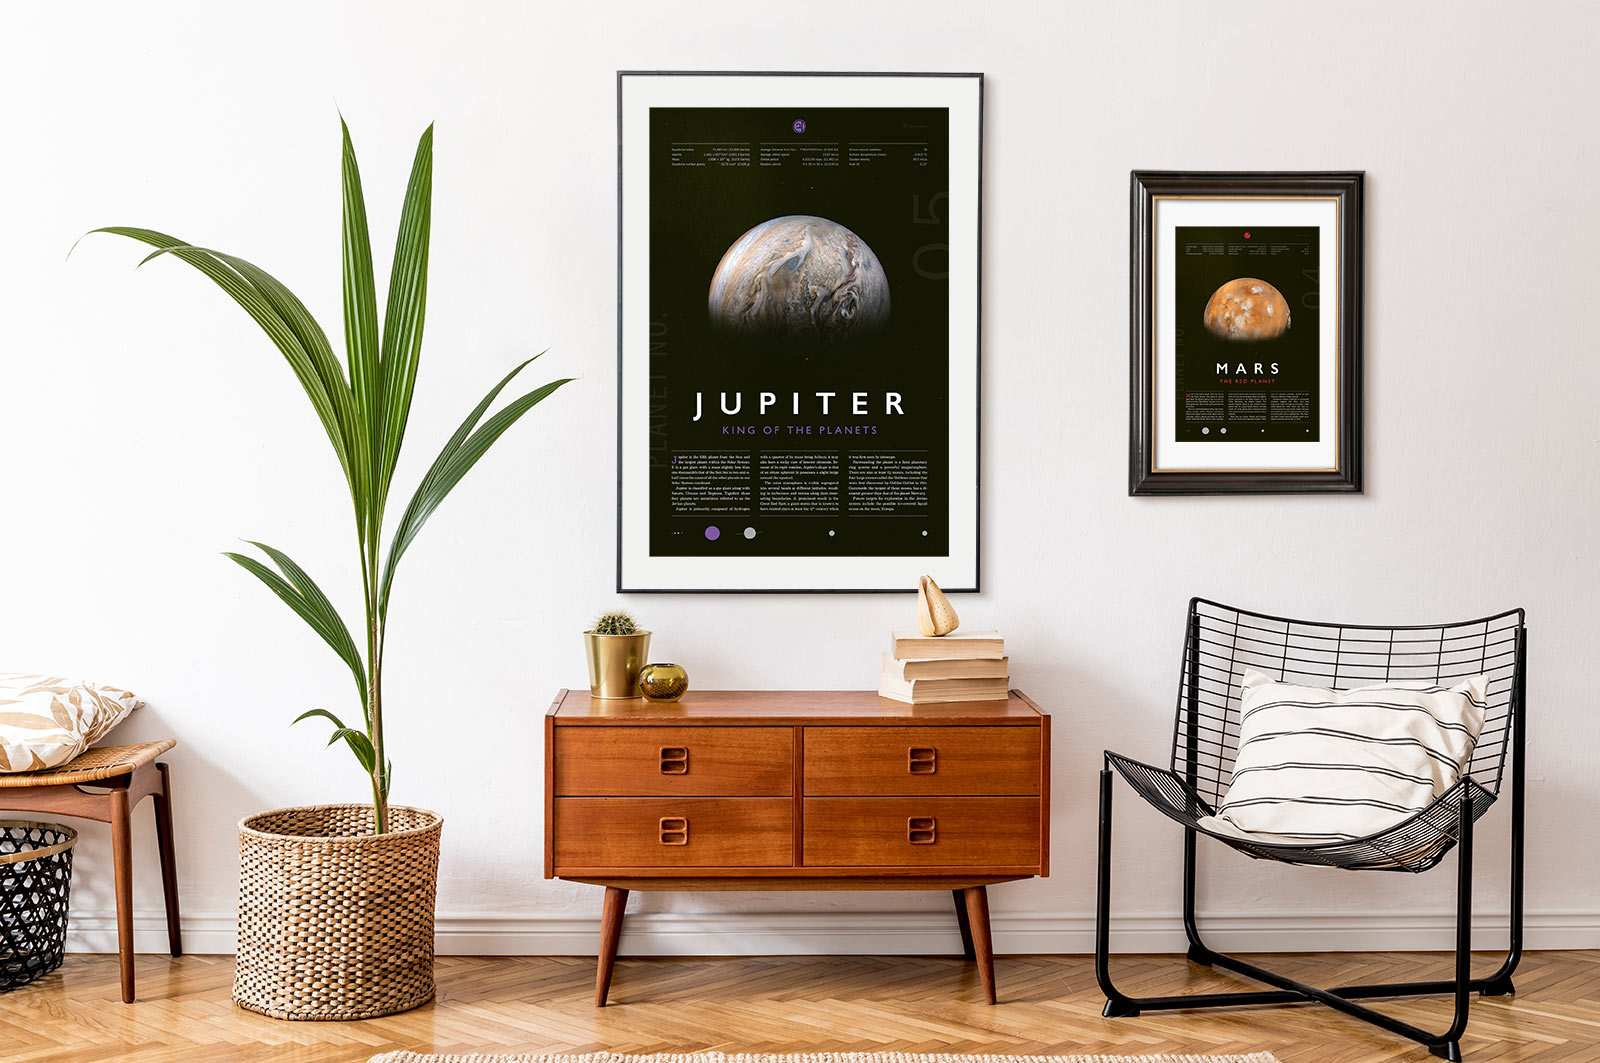 Jupiter and Mars prints